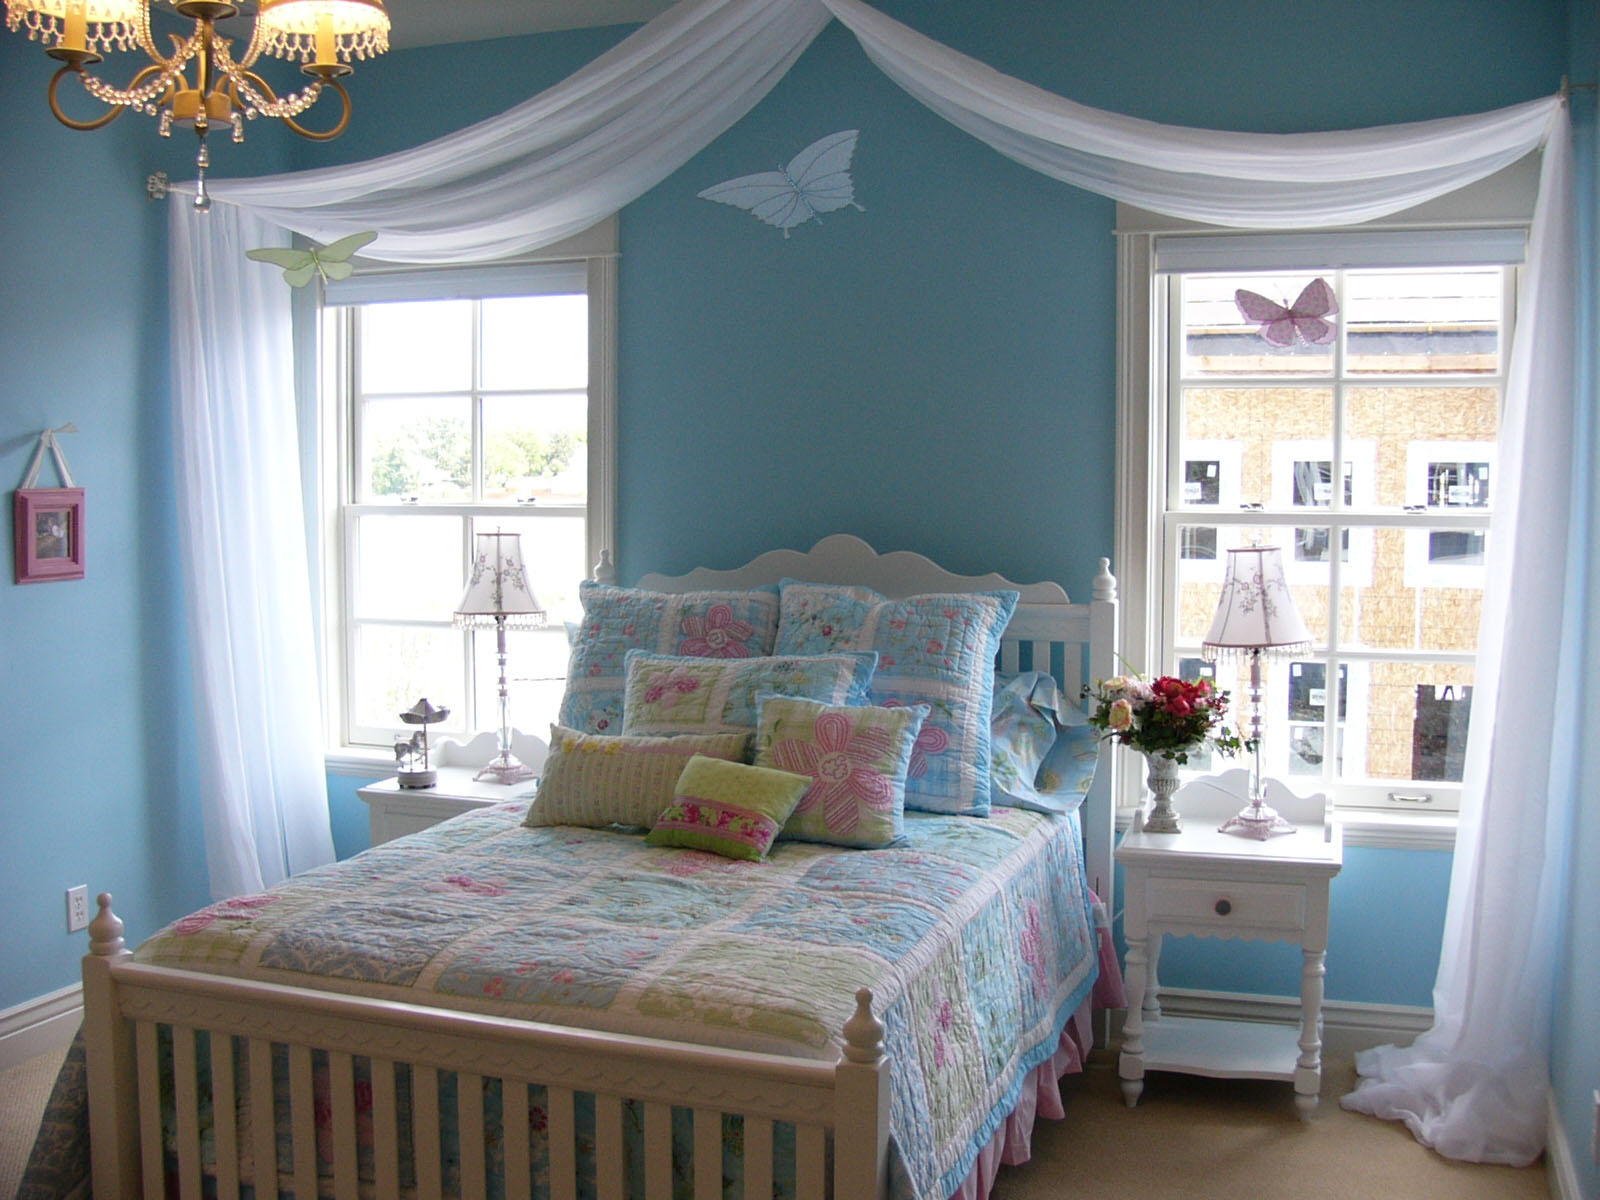 37 Unique and Super Colourful Bedroom Curtain Designs and ... on Bedroom Curtain Ideas  id=82032